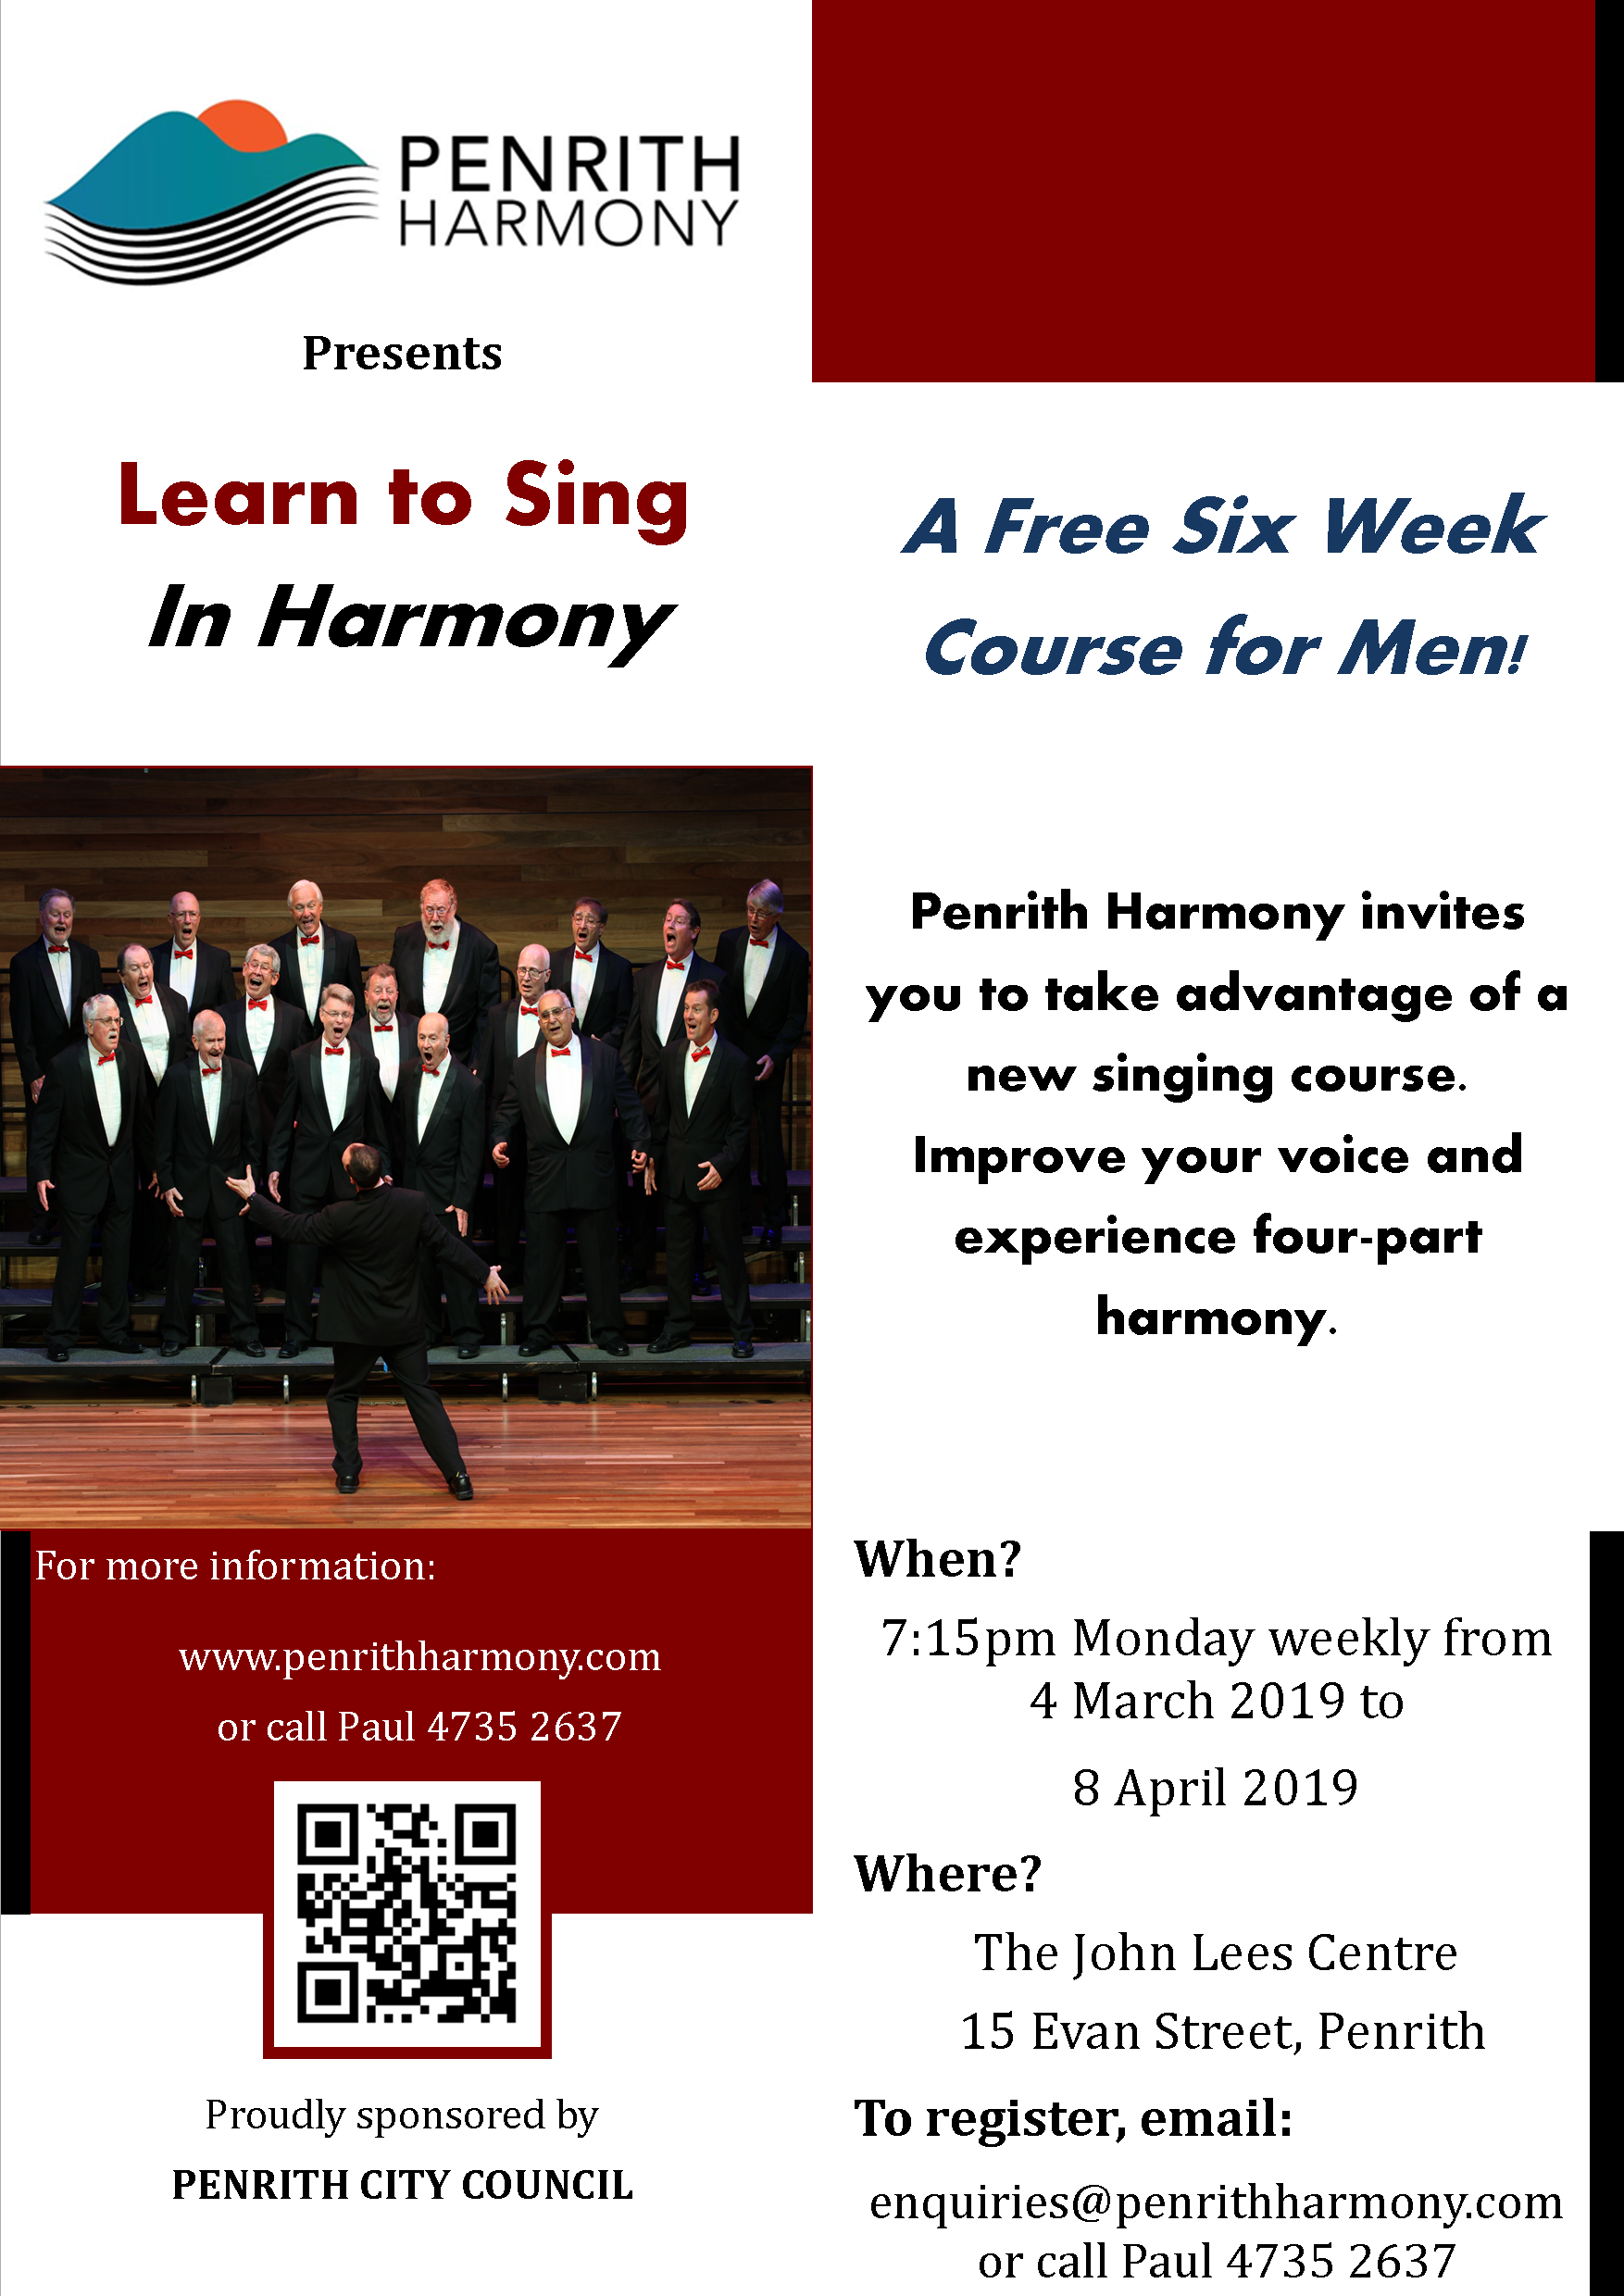 Learn to Sing in Harmony